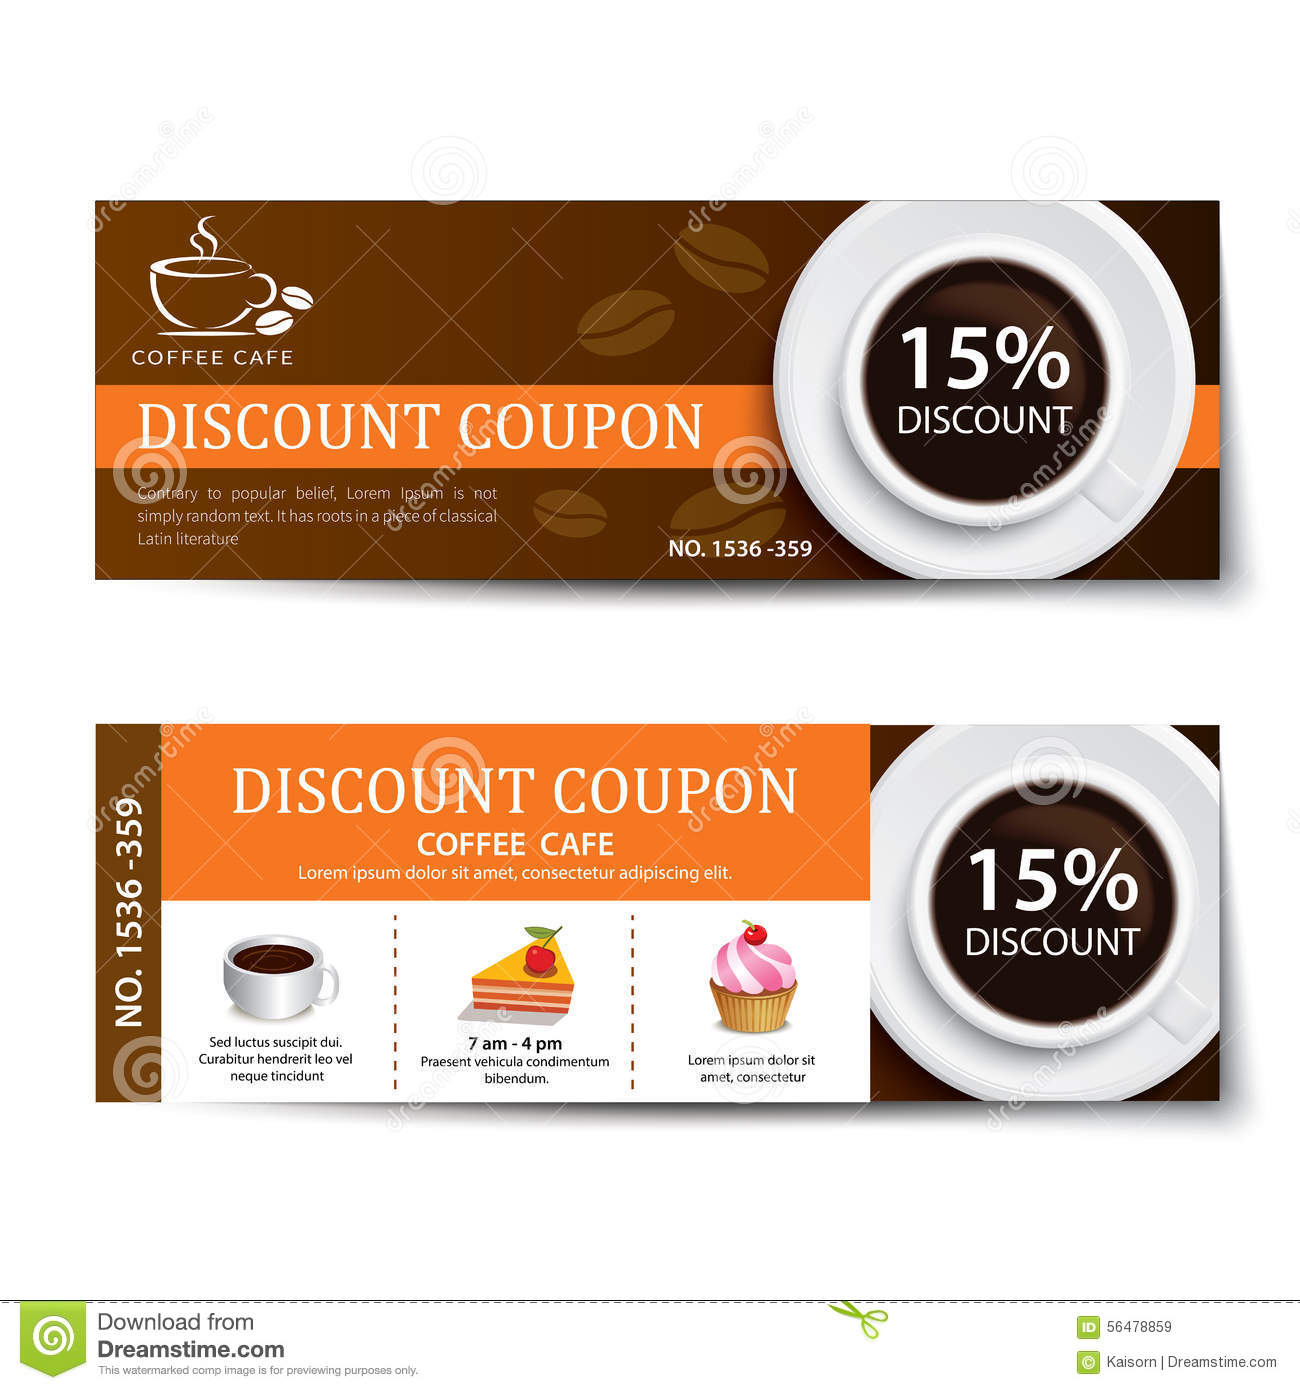 Gifts to india discount coupon